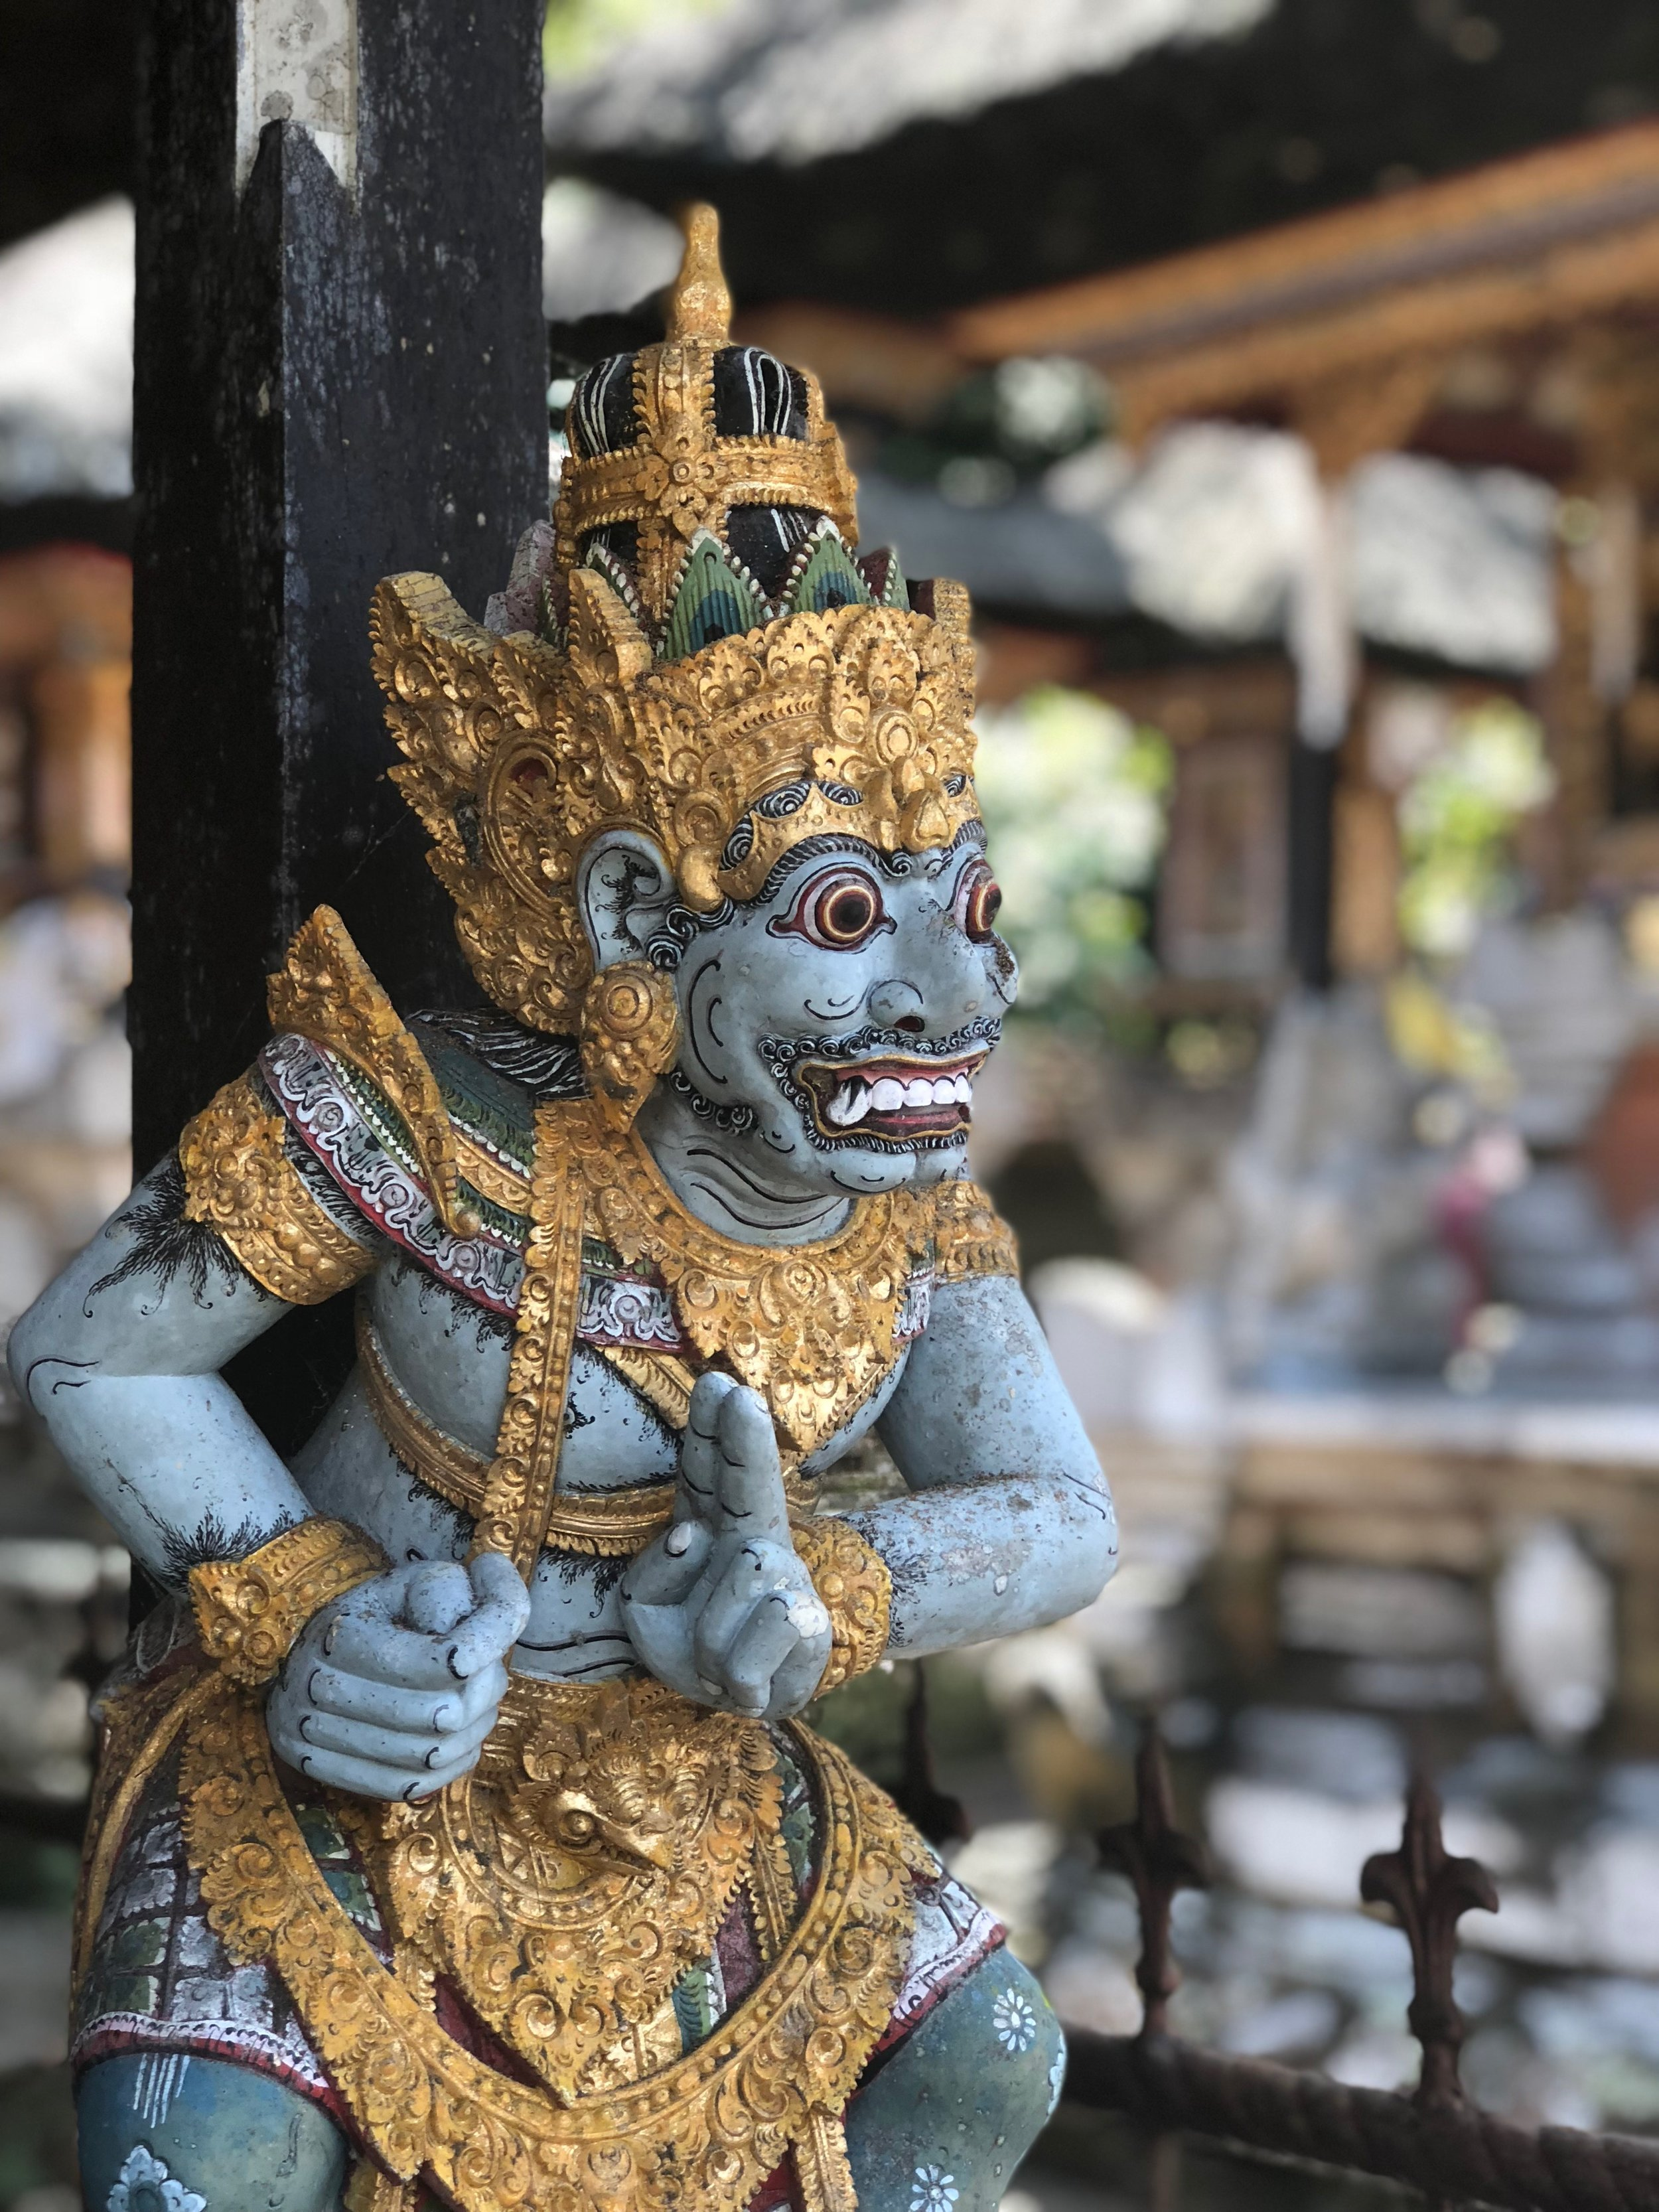 Most temples on Bali have statues of demons